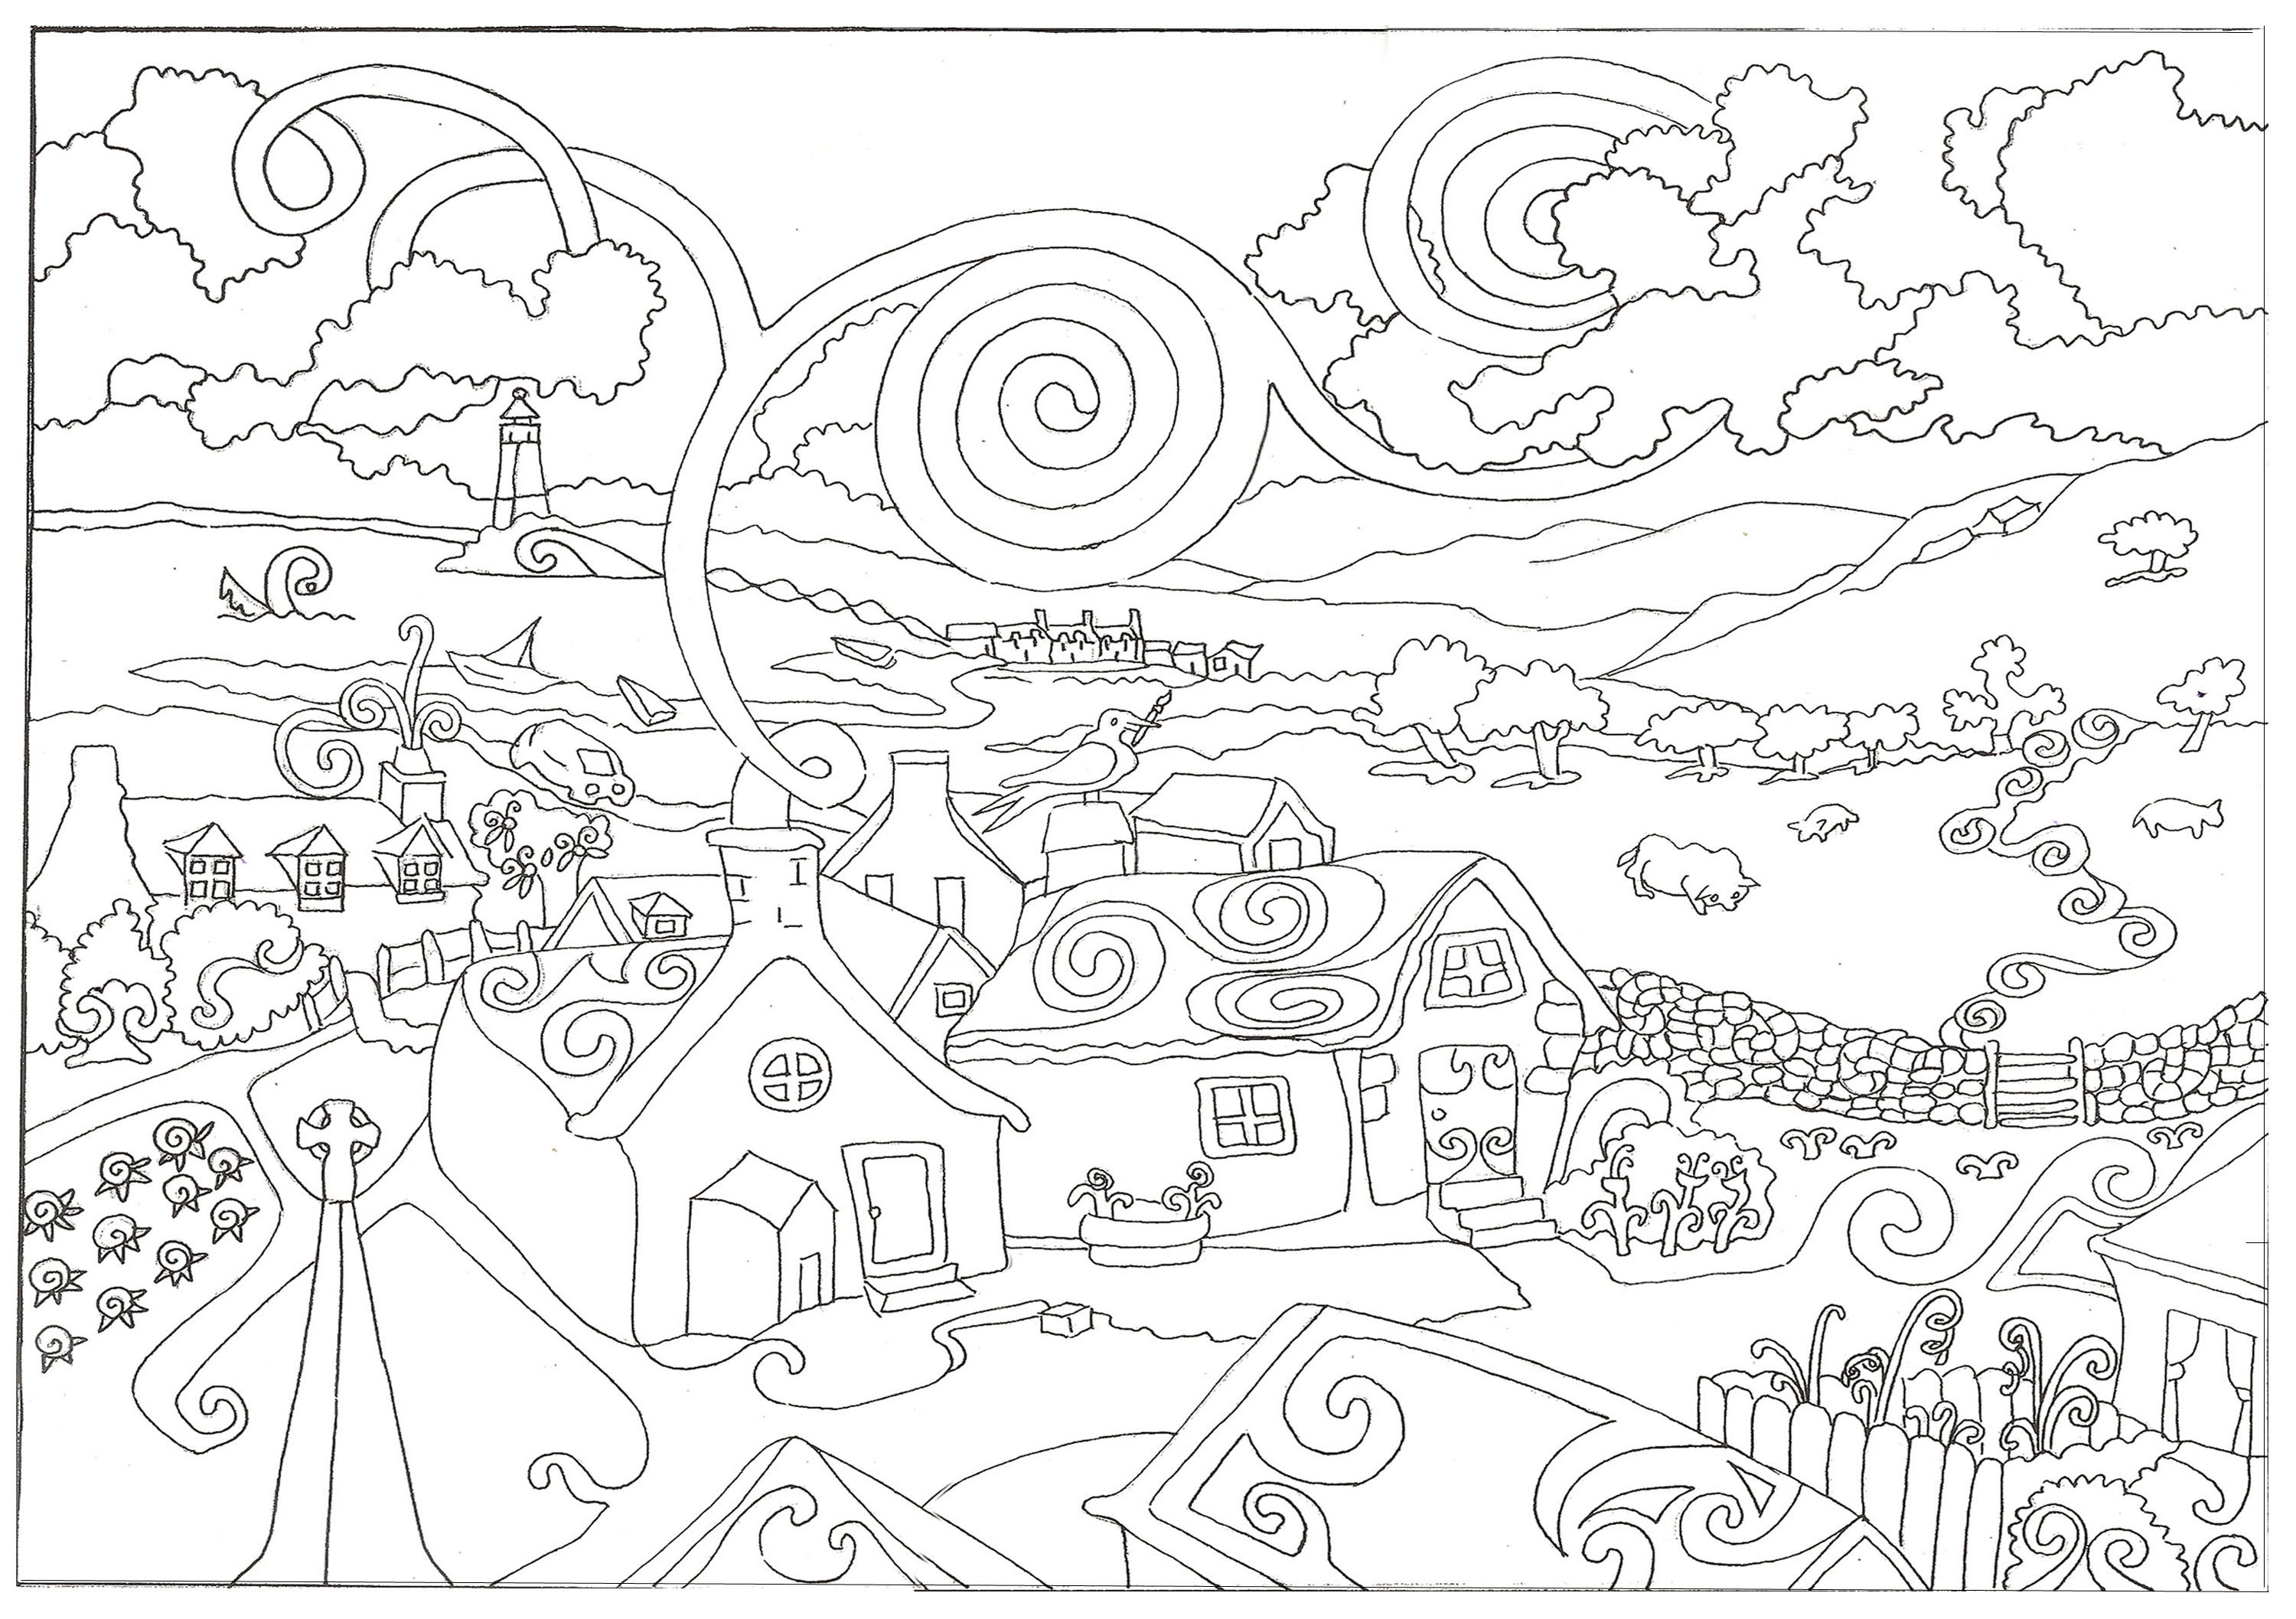 Adulte Paysage Difficile X additionally Funny Fall Autumn Scarecrow Coloring Books moreover Coloriage Livre Gratuit Cerf moreover Pumpkin Fall Scarecrow Coloring Sheets as well Happy Thanksgiving Coloring Page. on complicated coloring pages for adults autumn